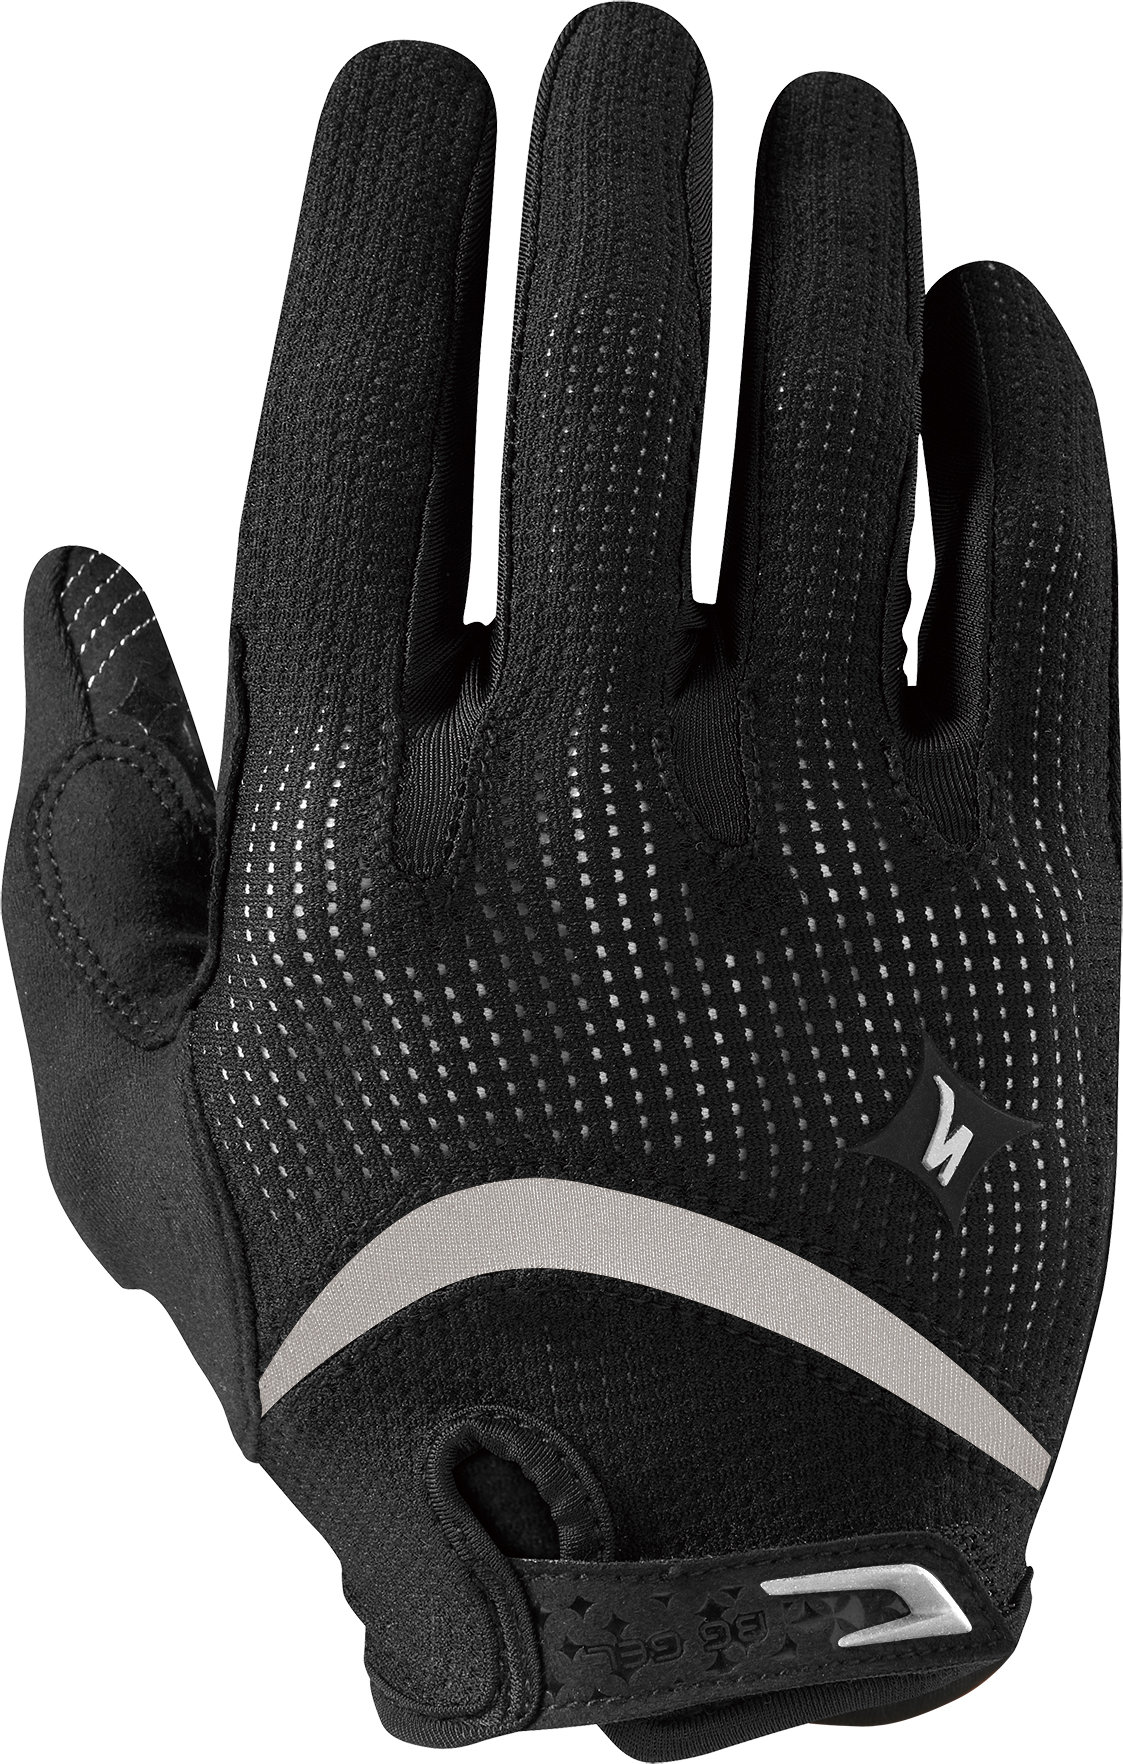 SPECIALIZED BG GEL GLOVE LF WMN BLK S - Bikedreams & Dustbikes